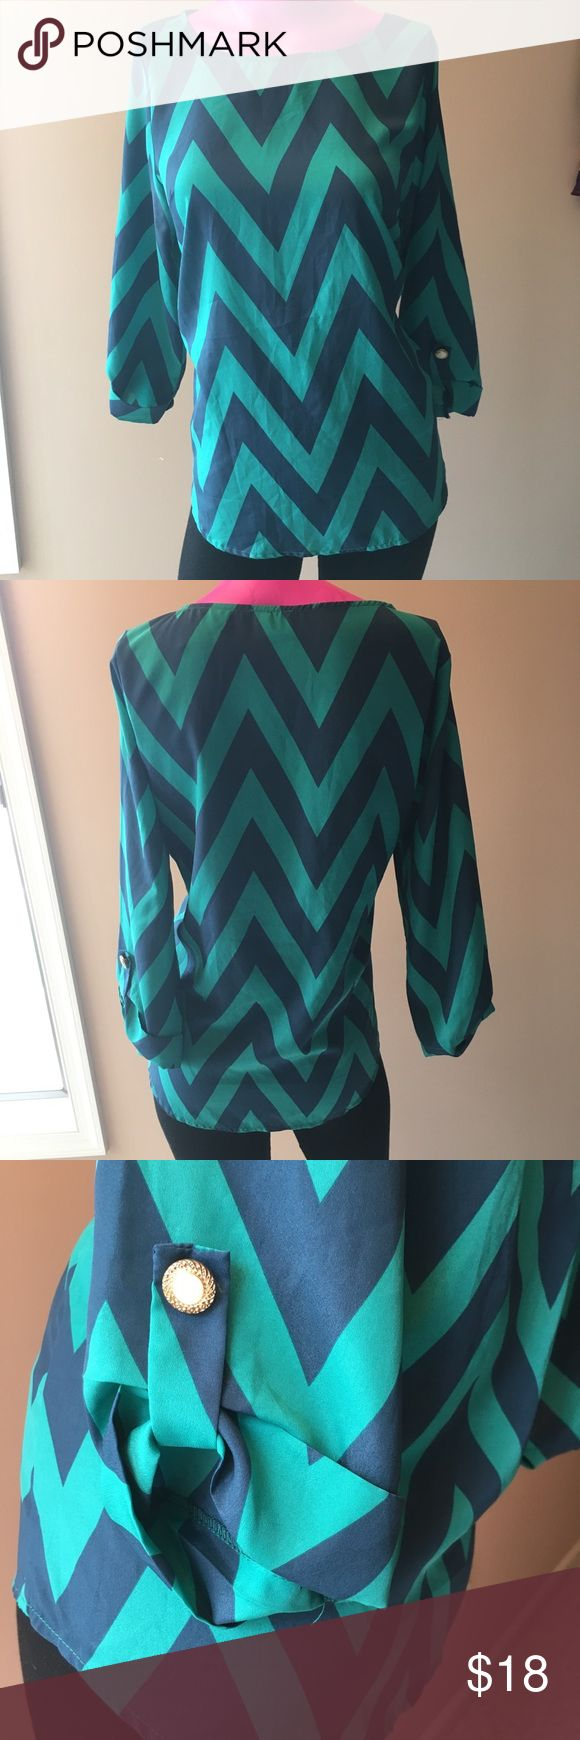 DINA BE Chevron Top NWOT teal and navy long sleeve top. Silky material without much stretch. Gold buttons to roll up sleeves if desired. Boatneck. Let me know if you need measurements! dina be Tops